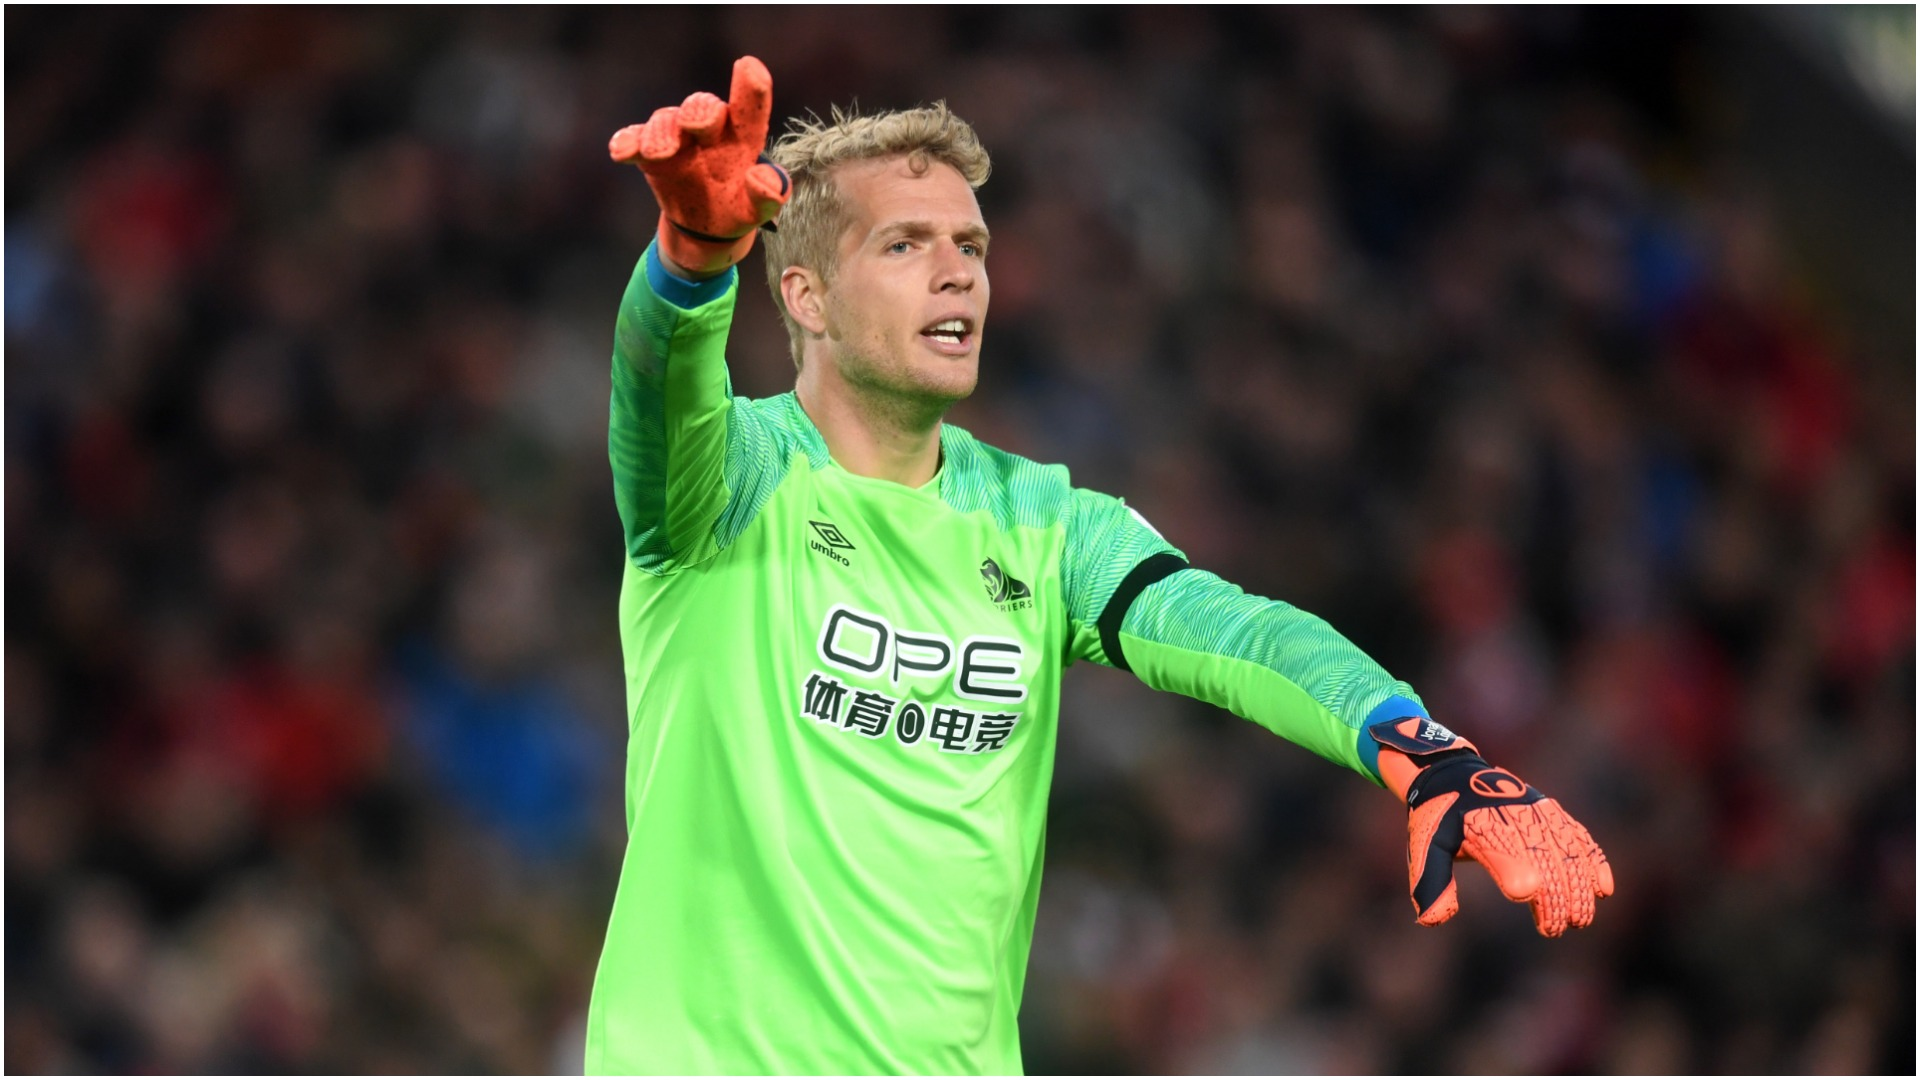 Jonas Lossl to join Everton on a free